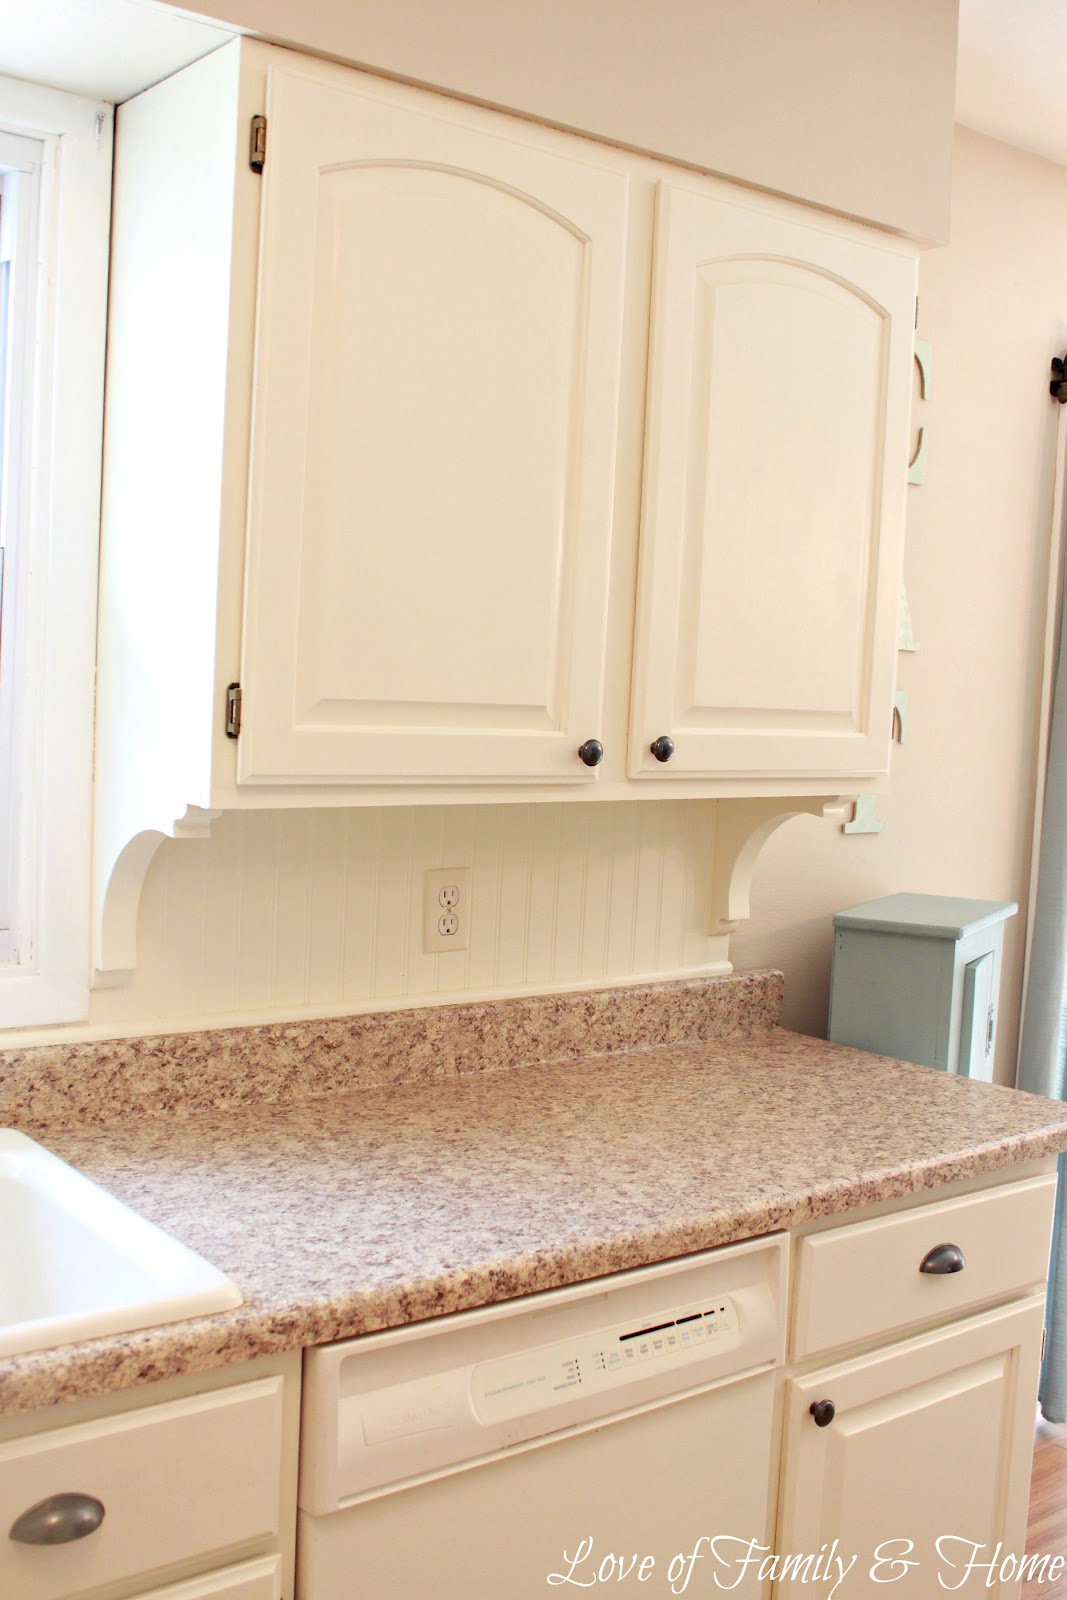 Wainscoting Kitchen Backsplash Beadboard Backsplash Corbel Love A Few Other Kitchen Updates